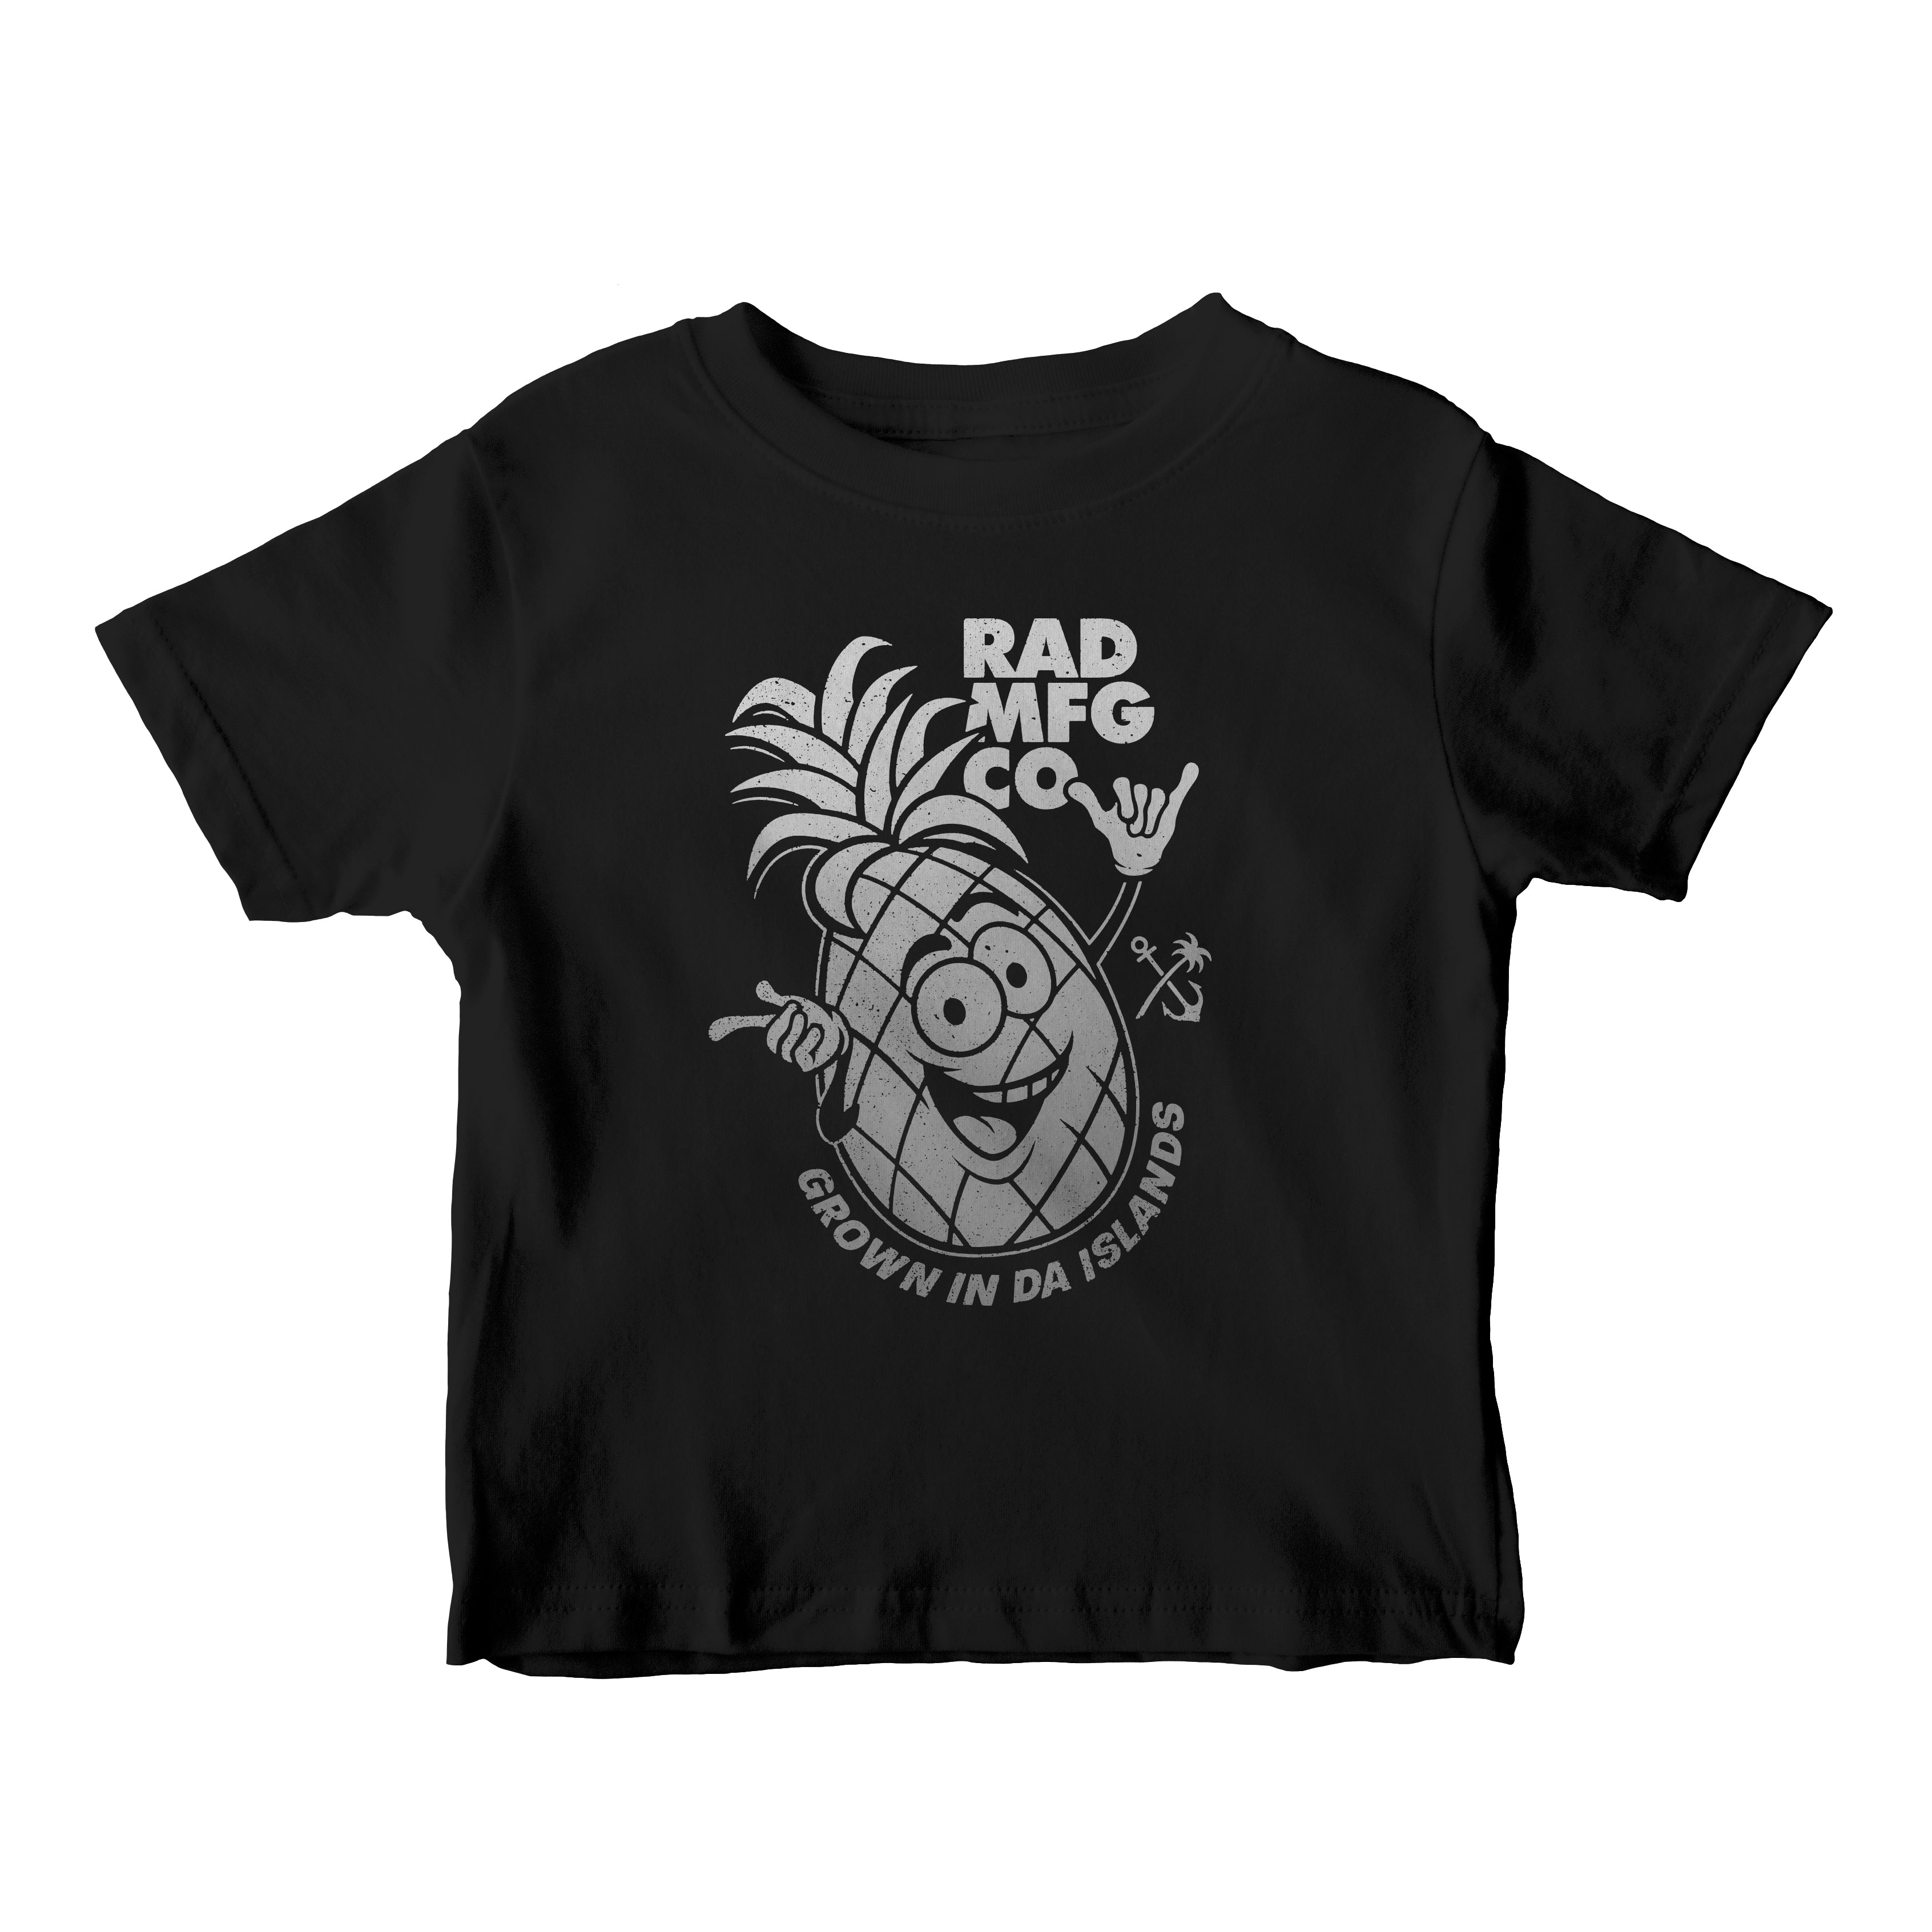 DA ISLANDS - RAD MFG Co.